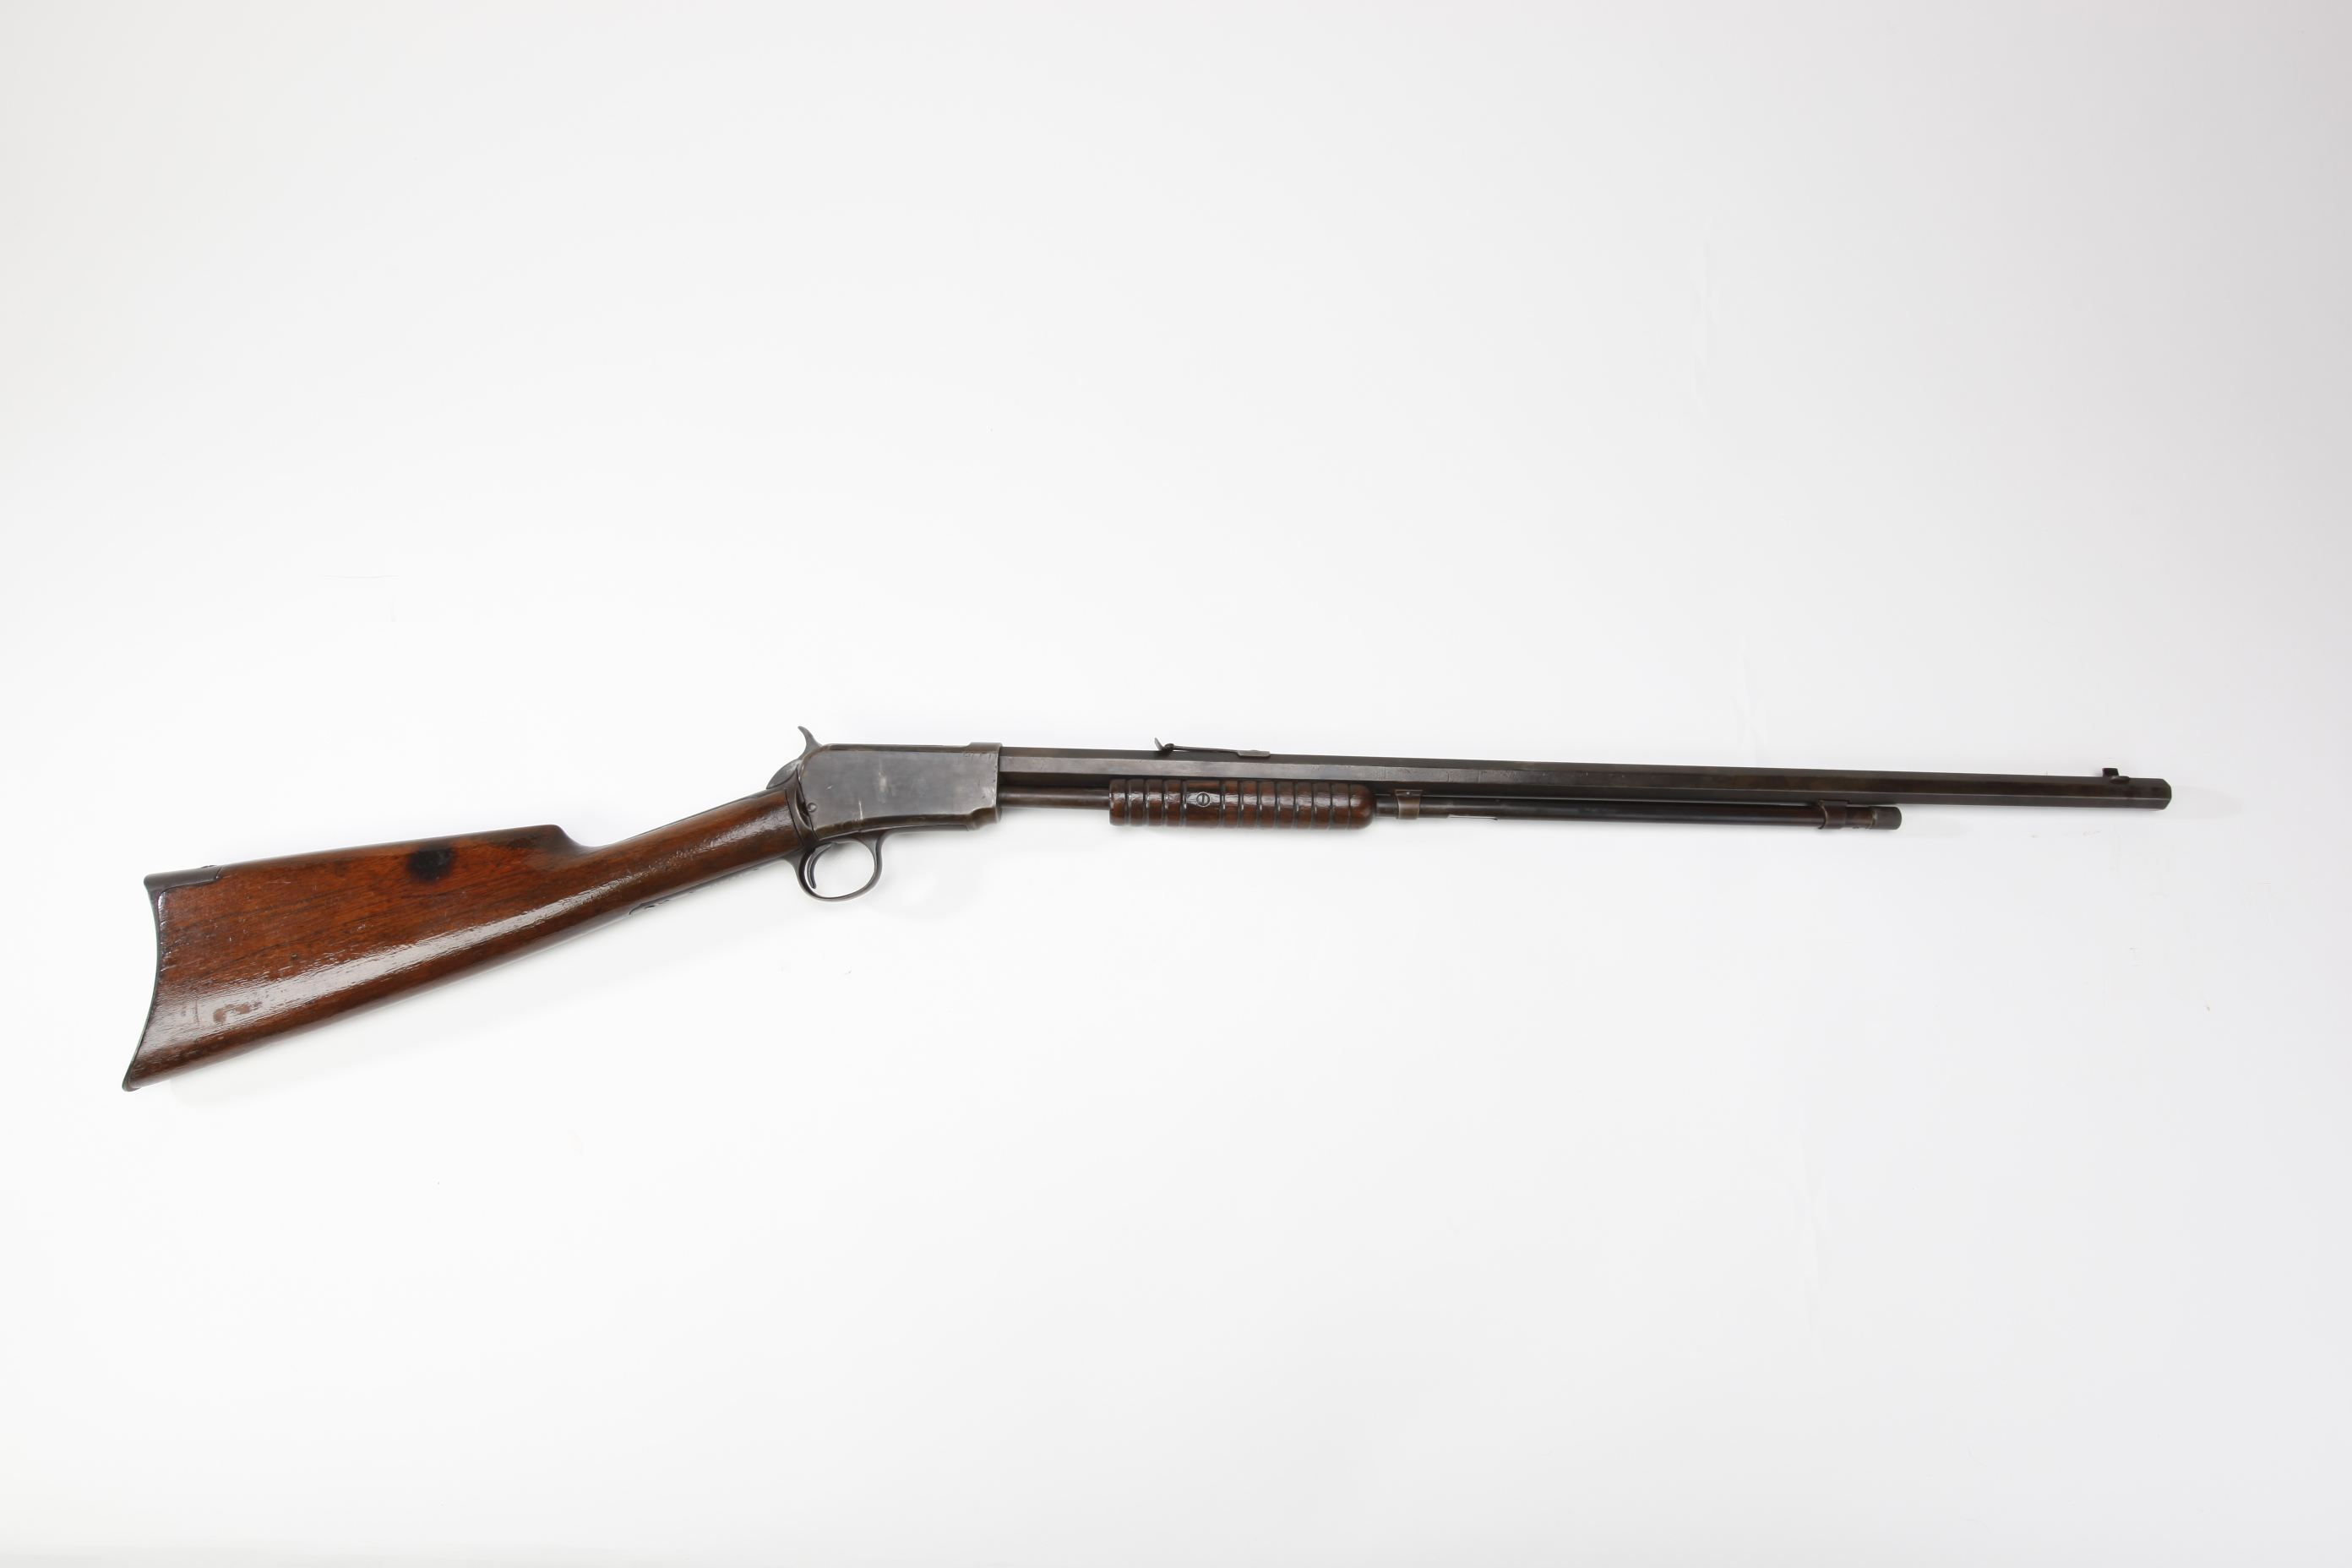 Winchester Model 1890 Slide Action Rifle (6)